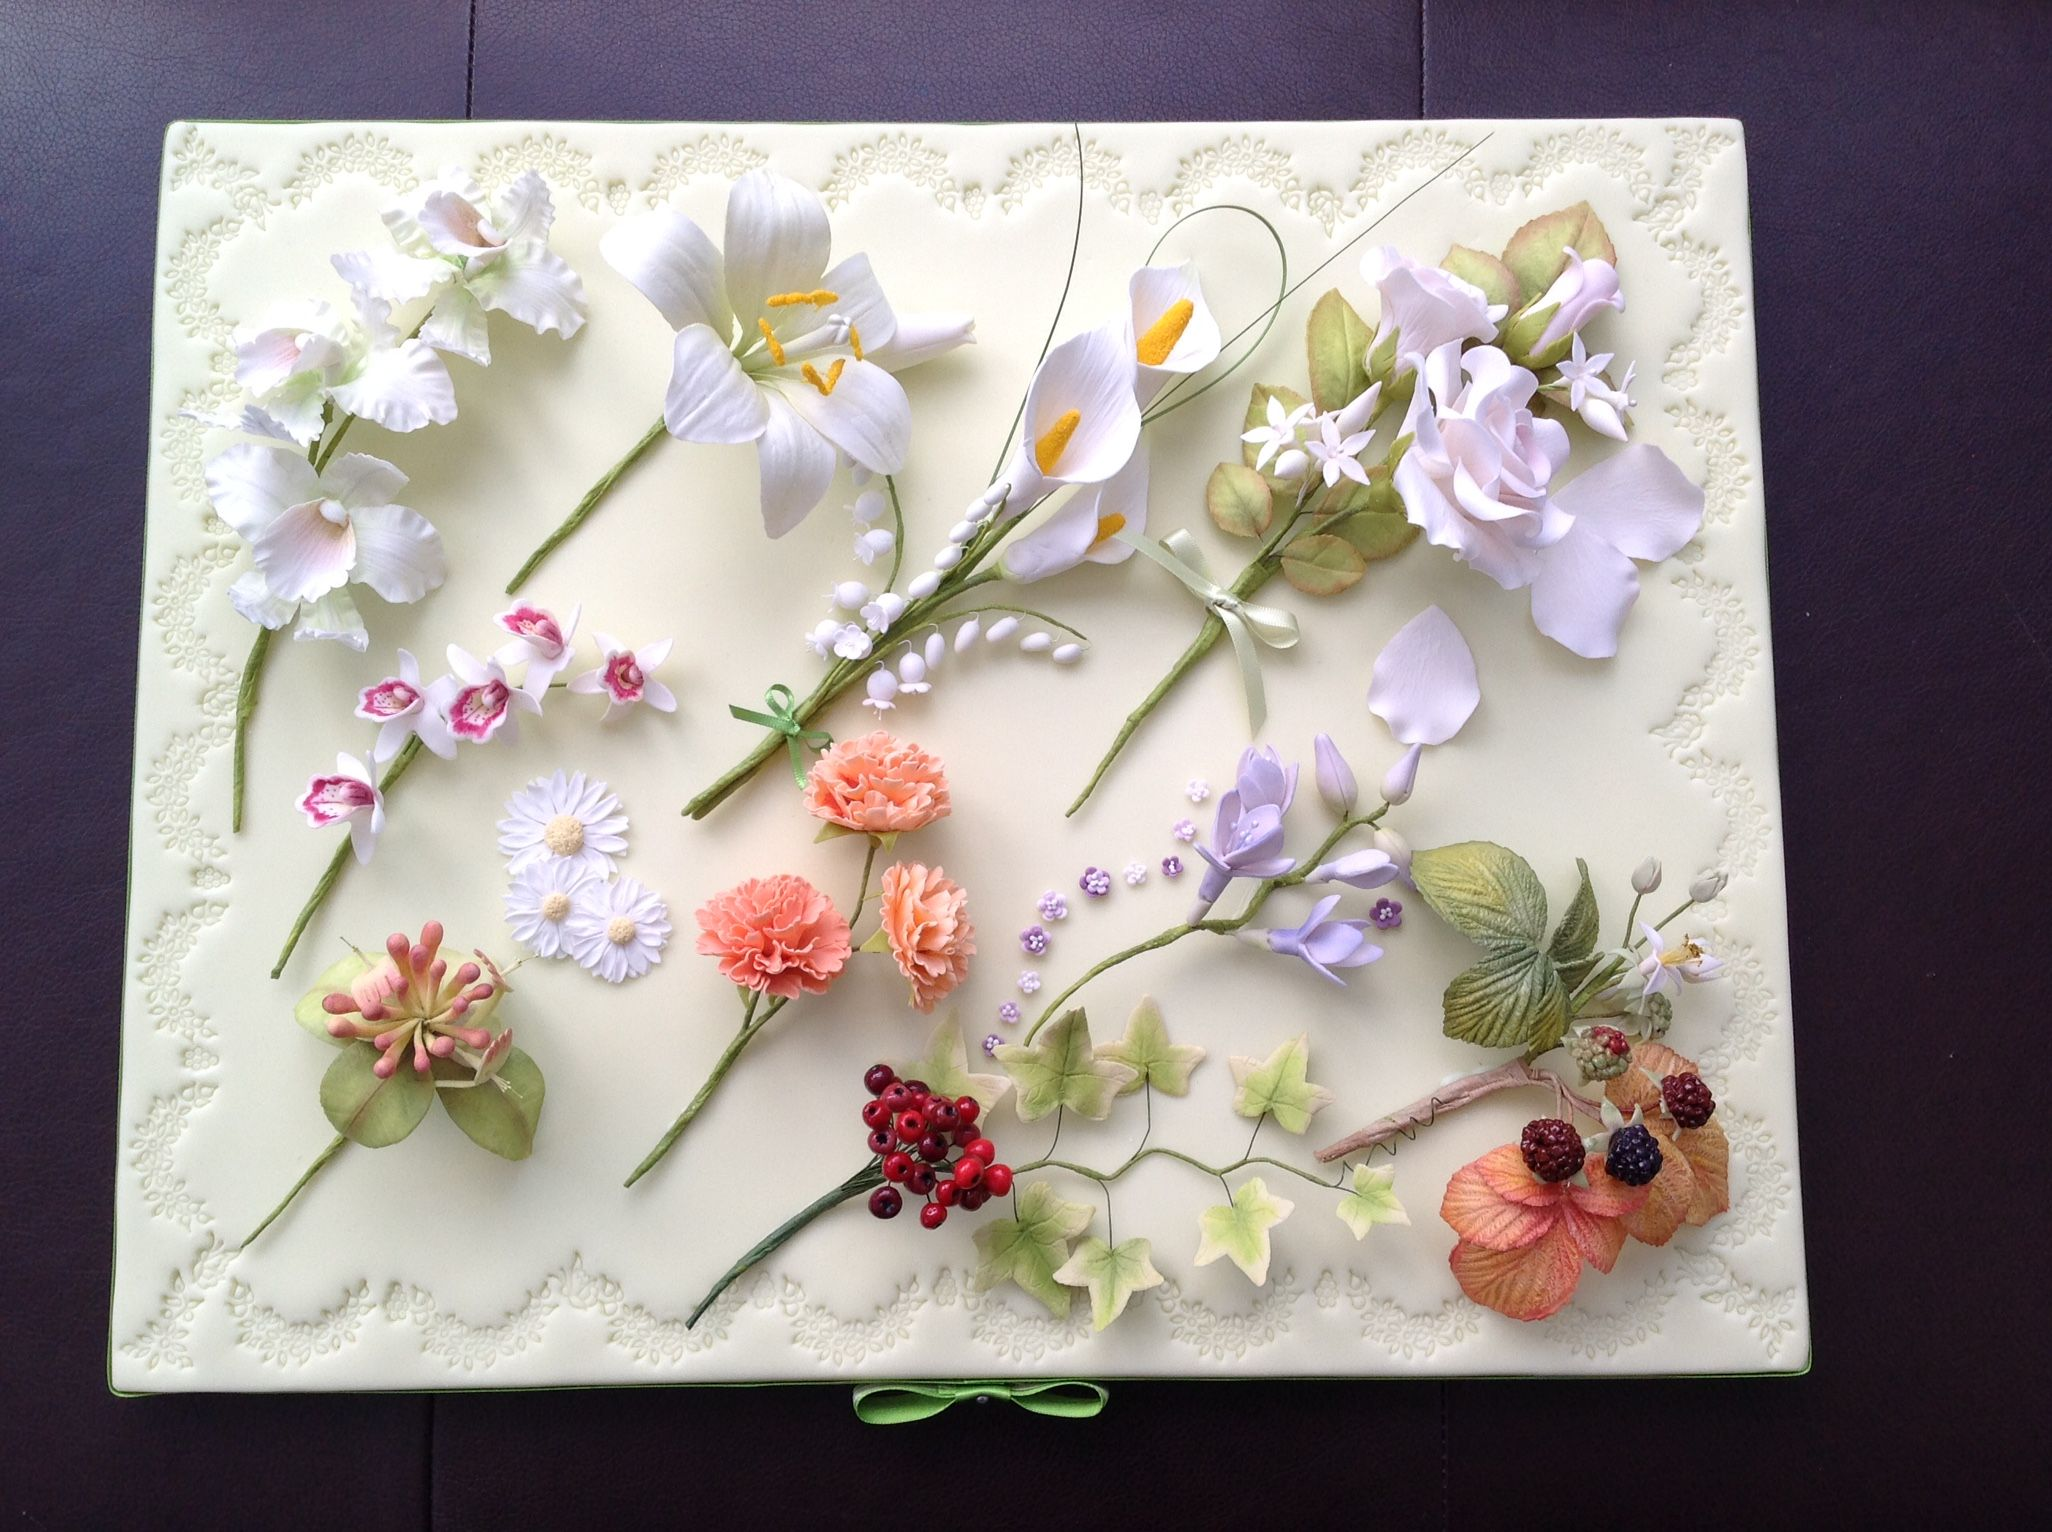 My Pme Sugar Flowers Diploma Presentation Board Cake